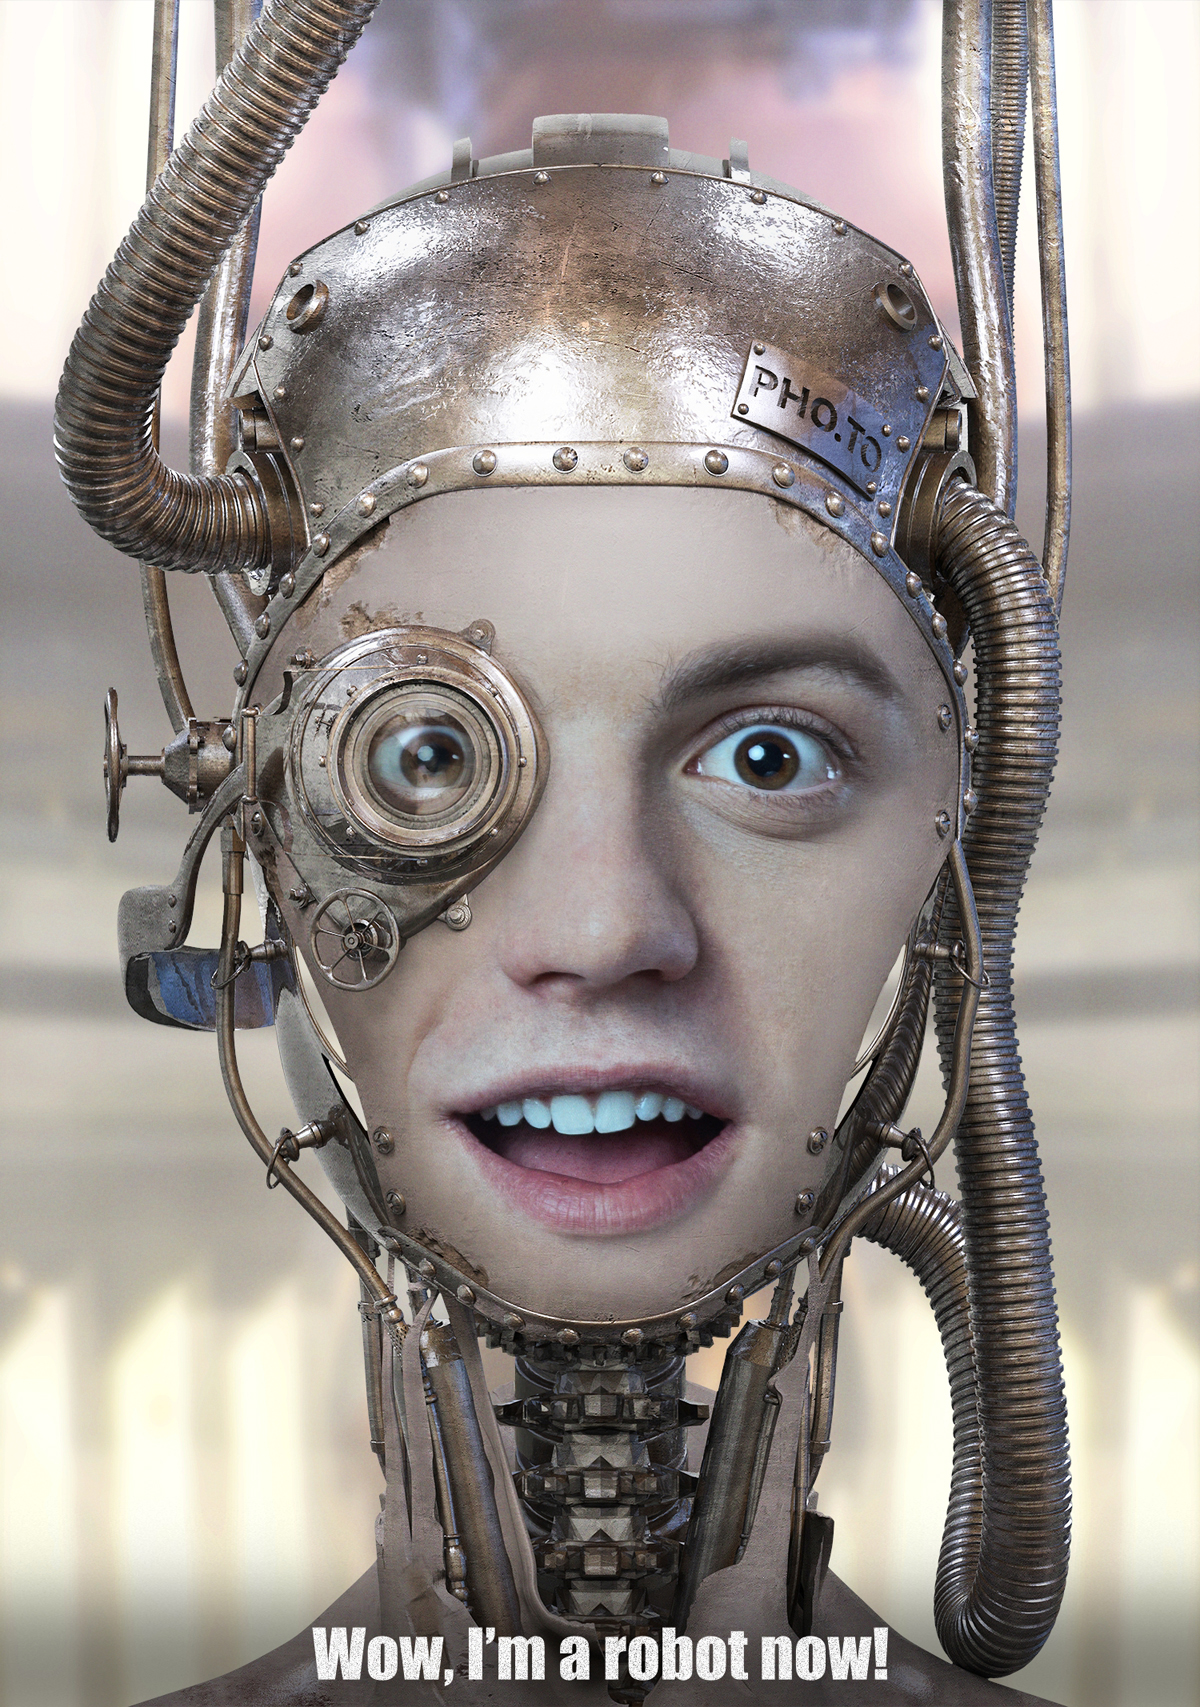 Steampunk droid mask to transform yourself into a humanoid robot